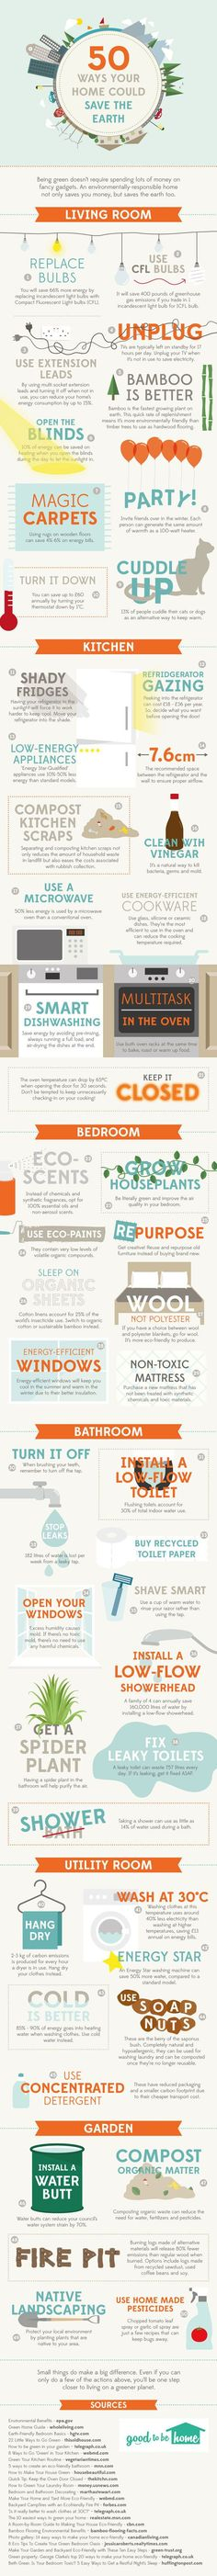 50 Ways Your Home Could Save the Earth Infographic                                                                                                                                                                                 More